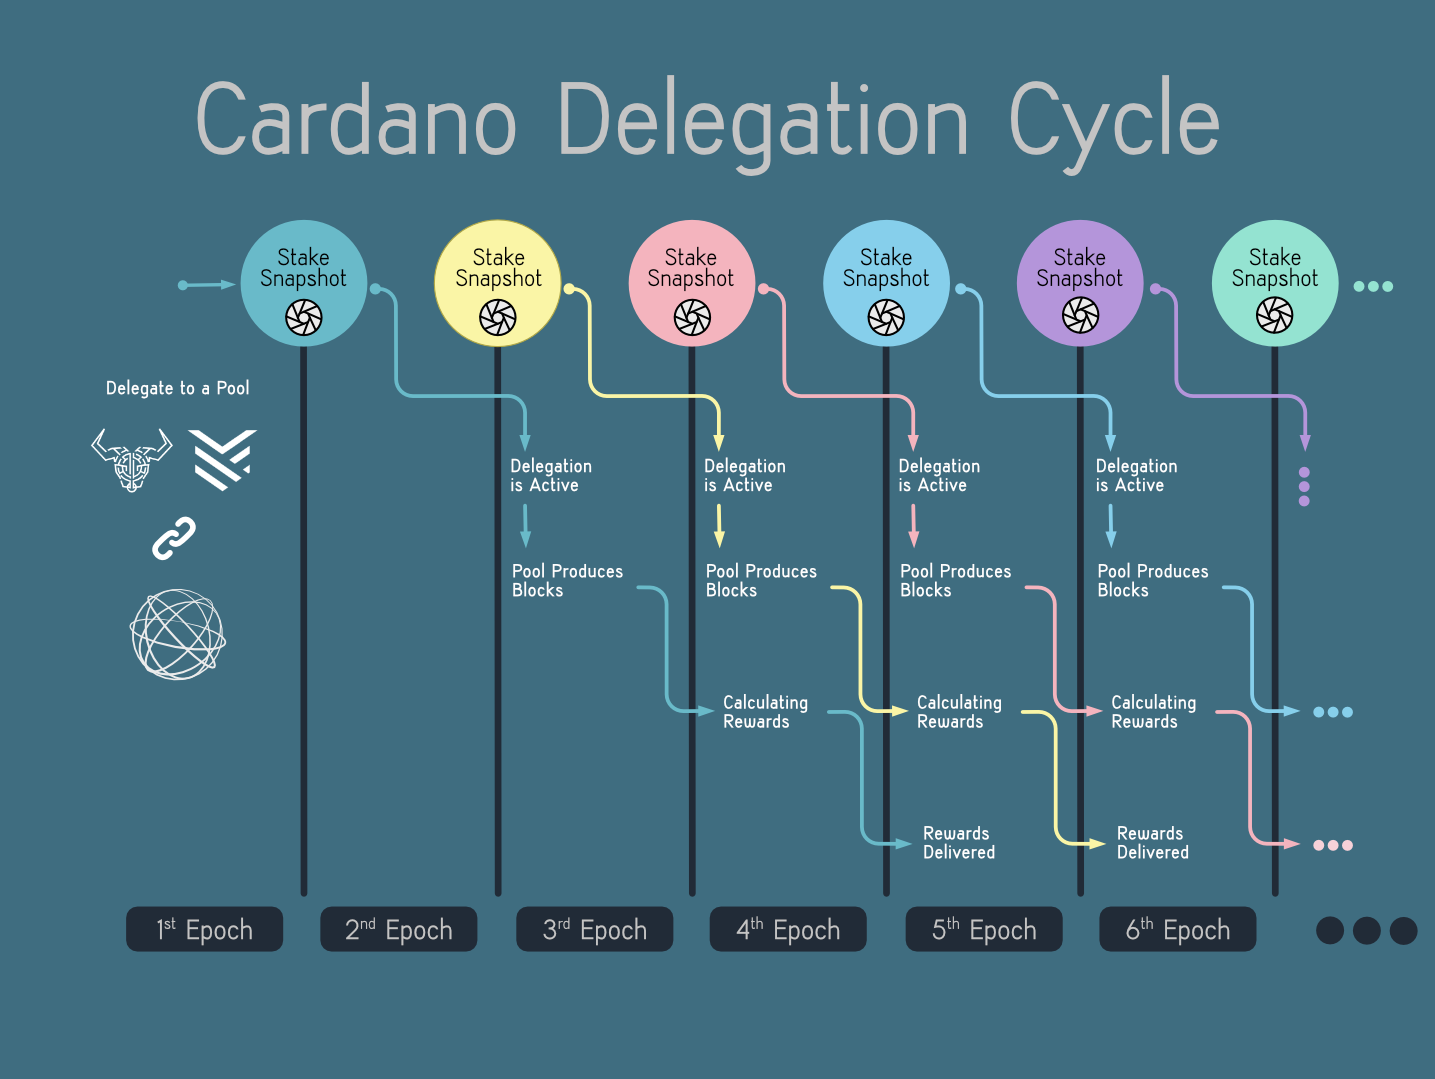 Cardano Delegation Clcle